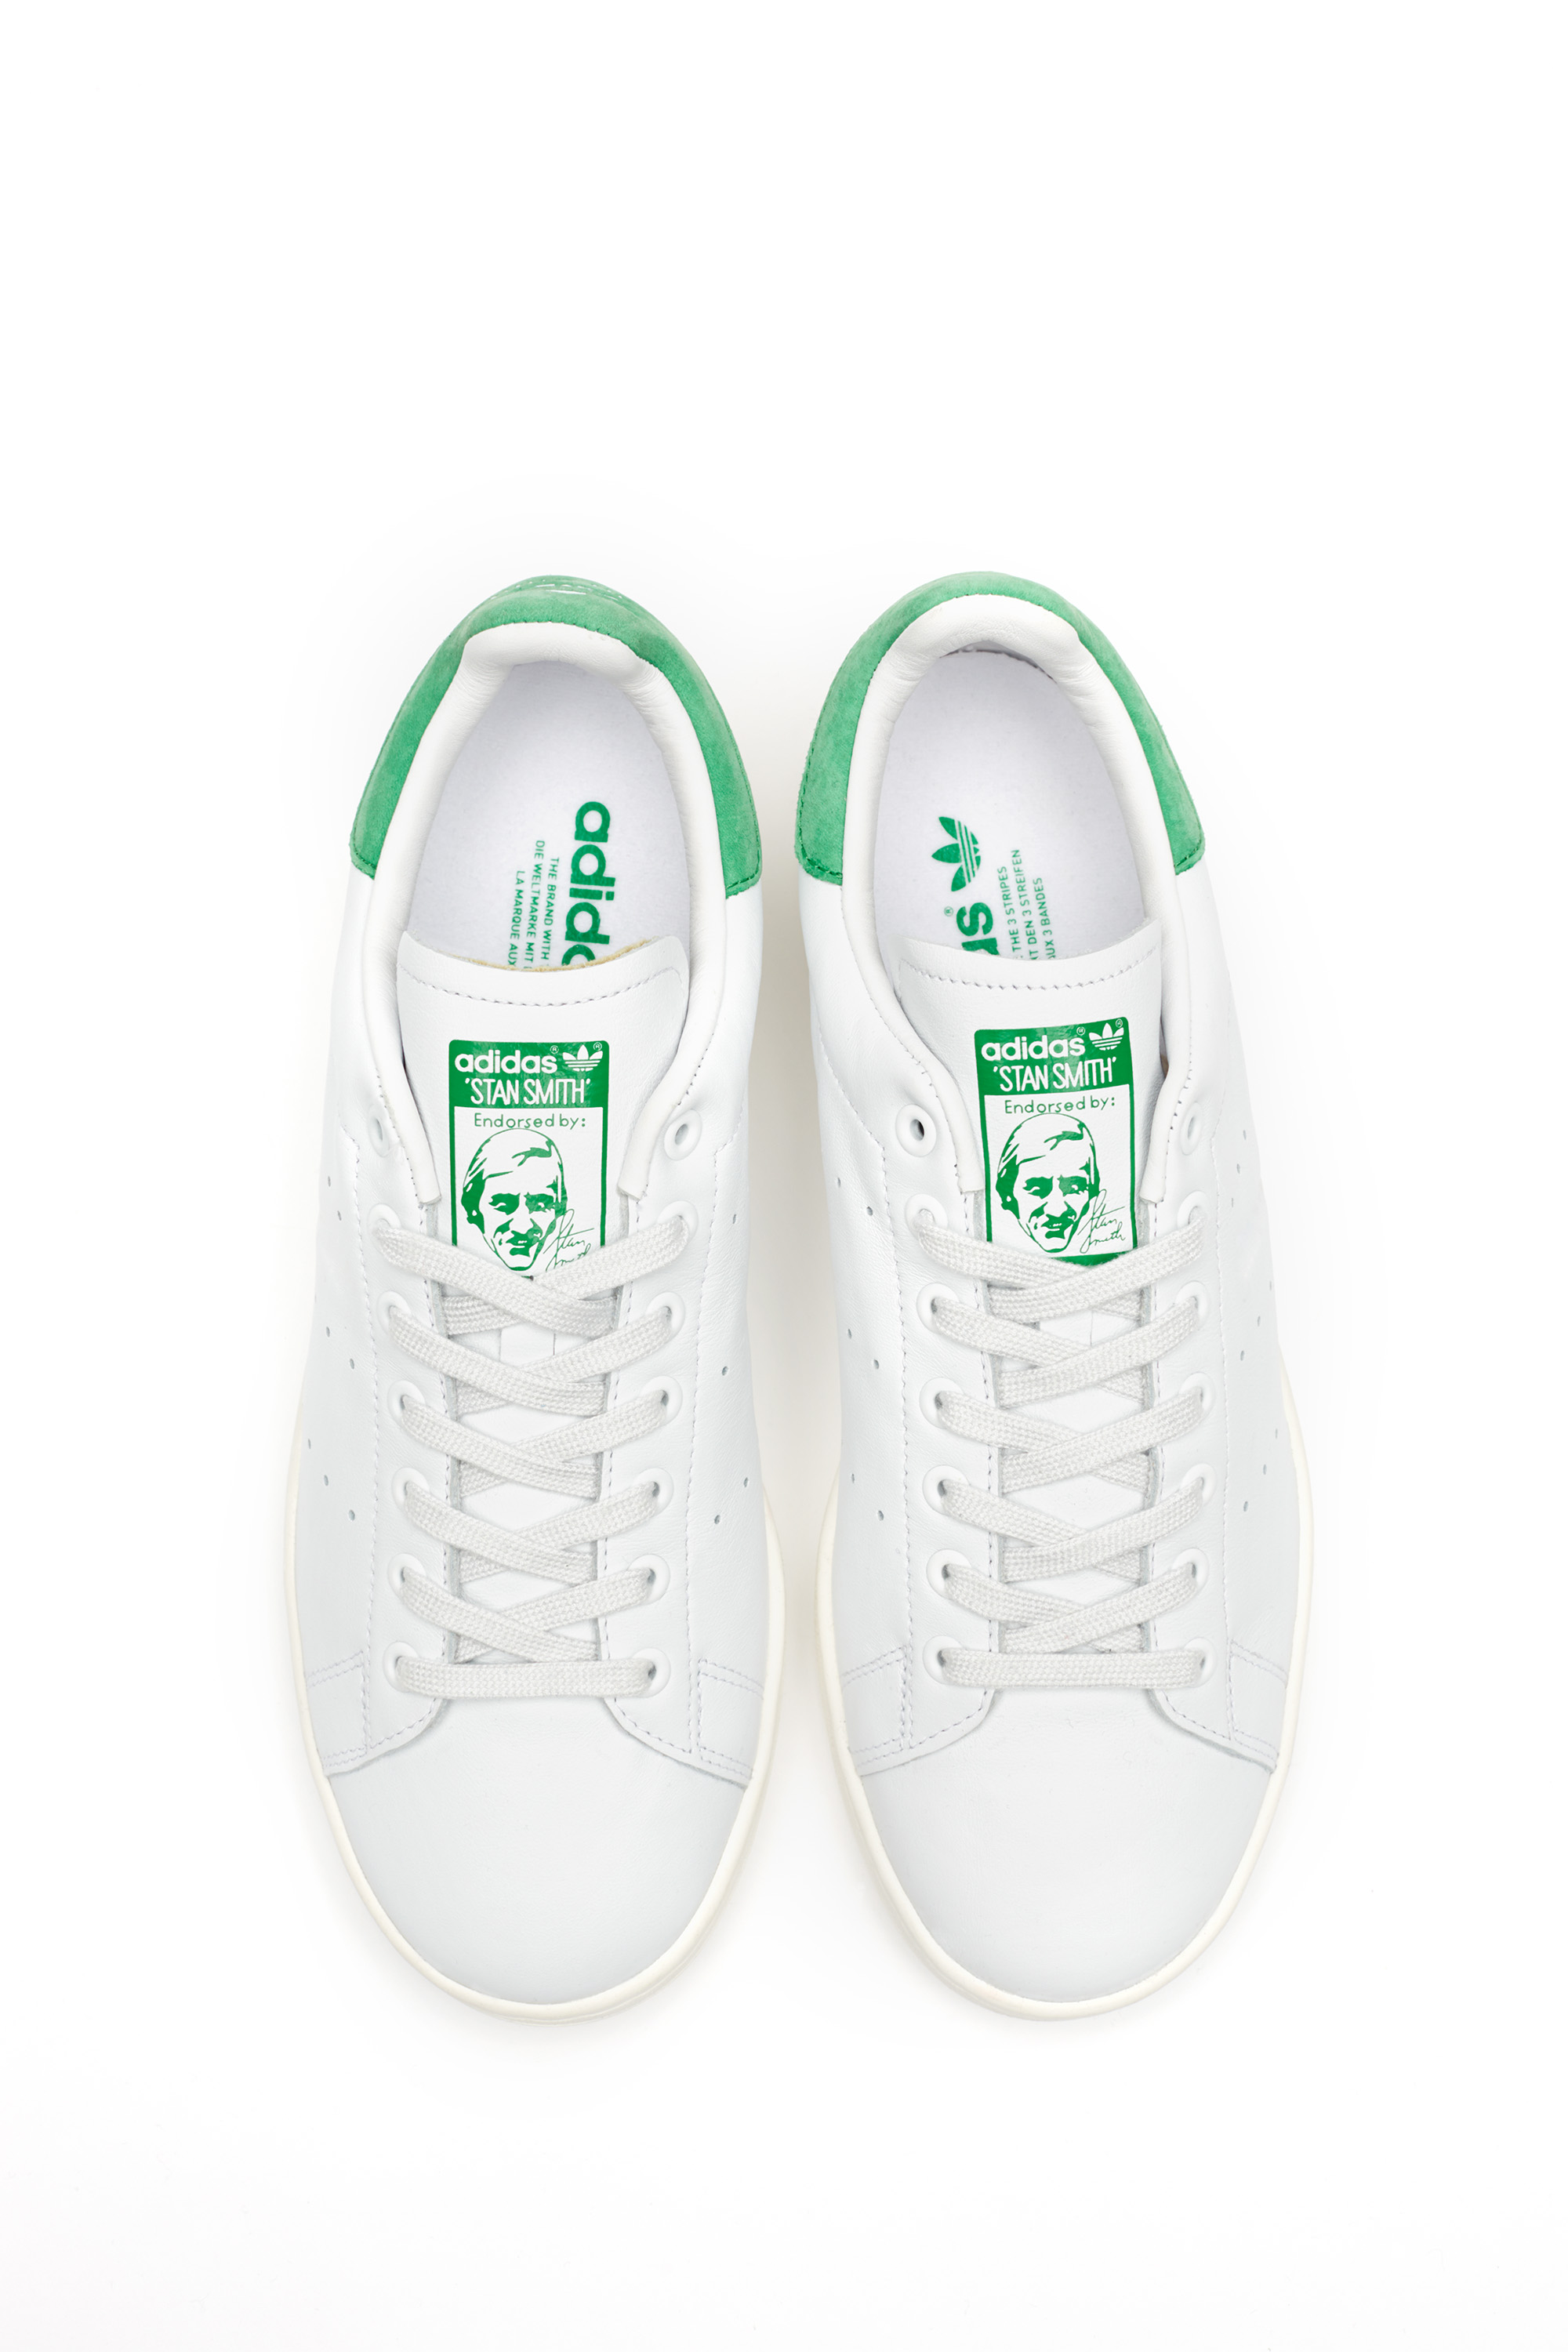 adidas giveaway giveaway adidas stan smith bons rapazes 9360